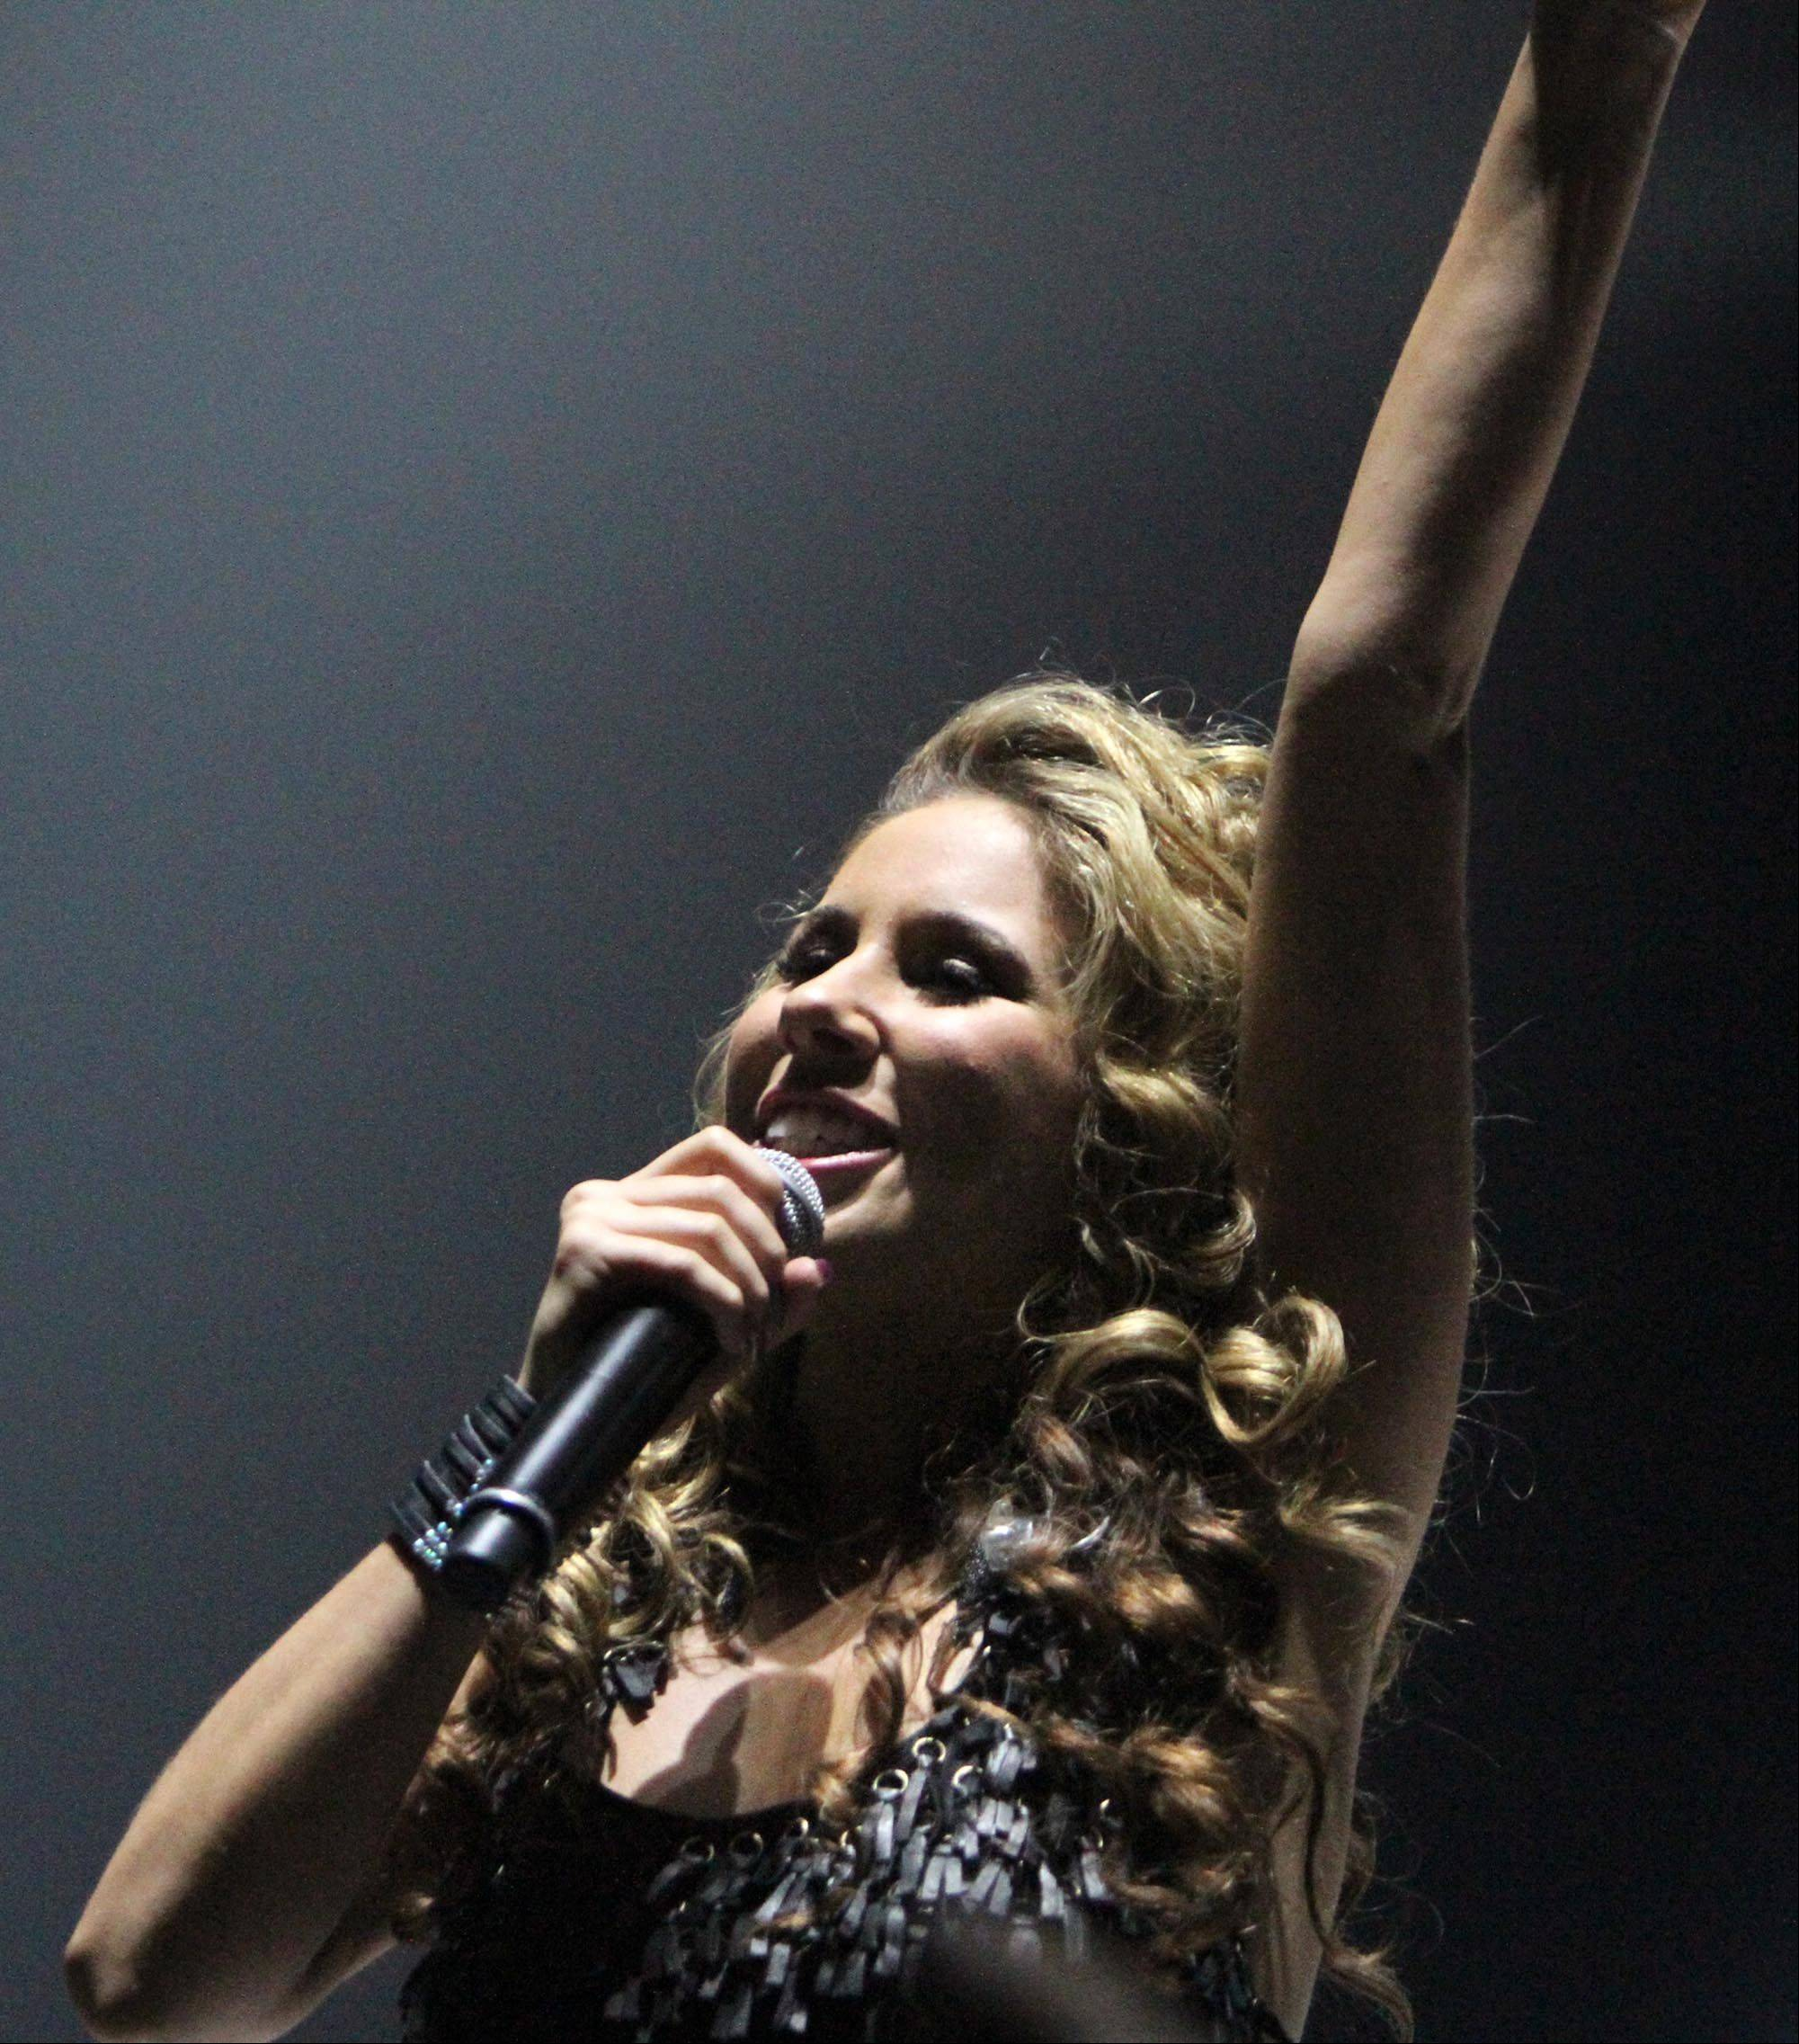 Haley Reinhart performs during the American Idol concert at Allstate Arena in Rosemont on Saturday.